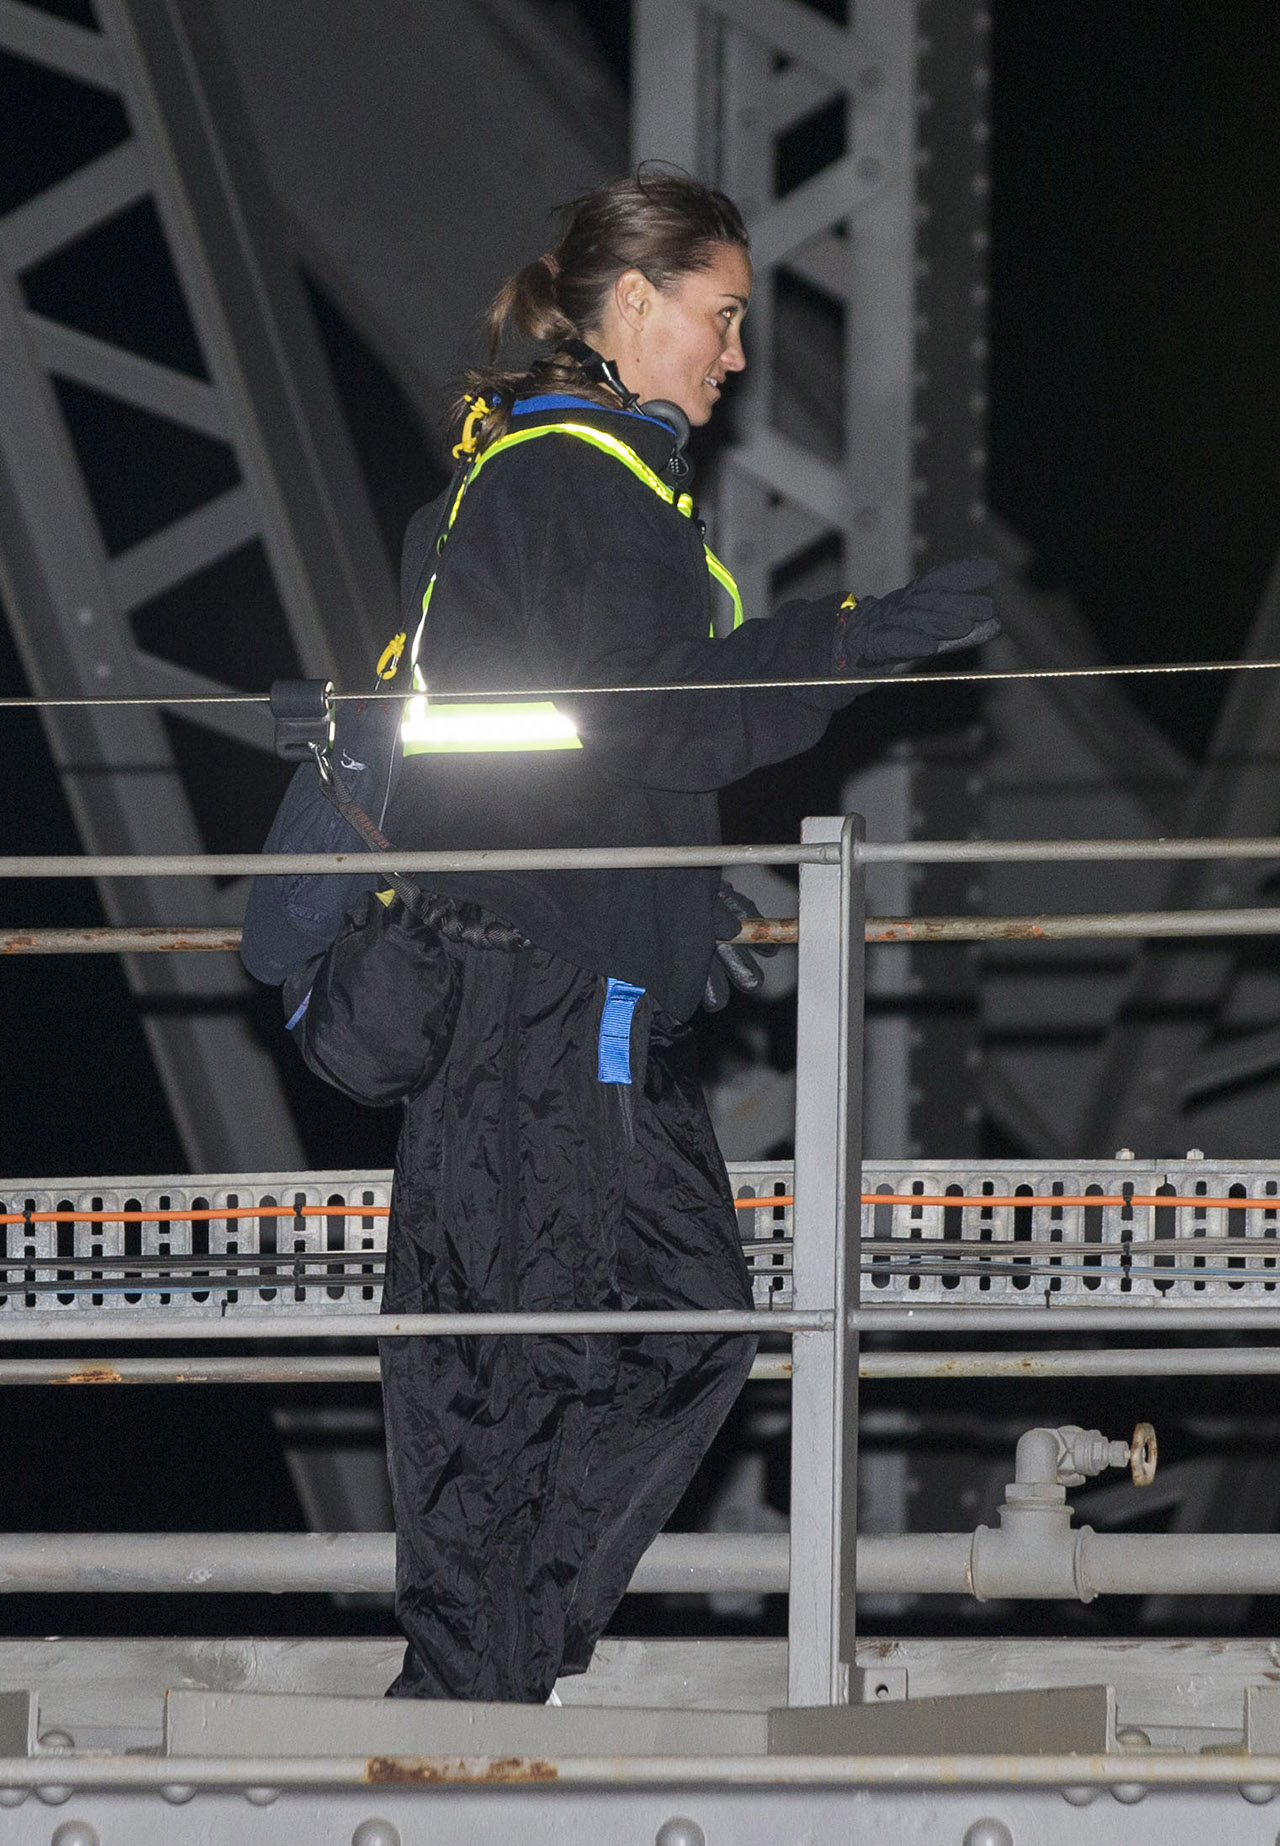 *NO MAIL ONLINE* Pippa Middleton and husband James Matthews do the Sydney Harbour Bridge Climb on their honeymoon in Australia. <P> Pictured: Pippa Middleton <B>Ref: SPL1510490  310517  </B><BR/> Picture by: Media-Mode / Splash News<BR/> </P><P> <B>Splash News and Pictures</B><BR/> Los Angeles:310-821-2666<BR/> New York:212-619-2666<BR/> London:870-934-2666<BR/> photodesk@splashnews.com<BR/> </P>